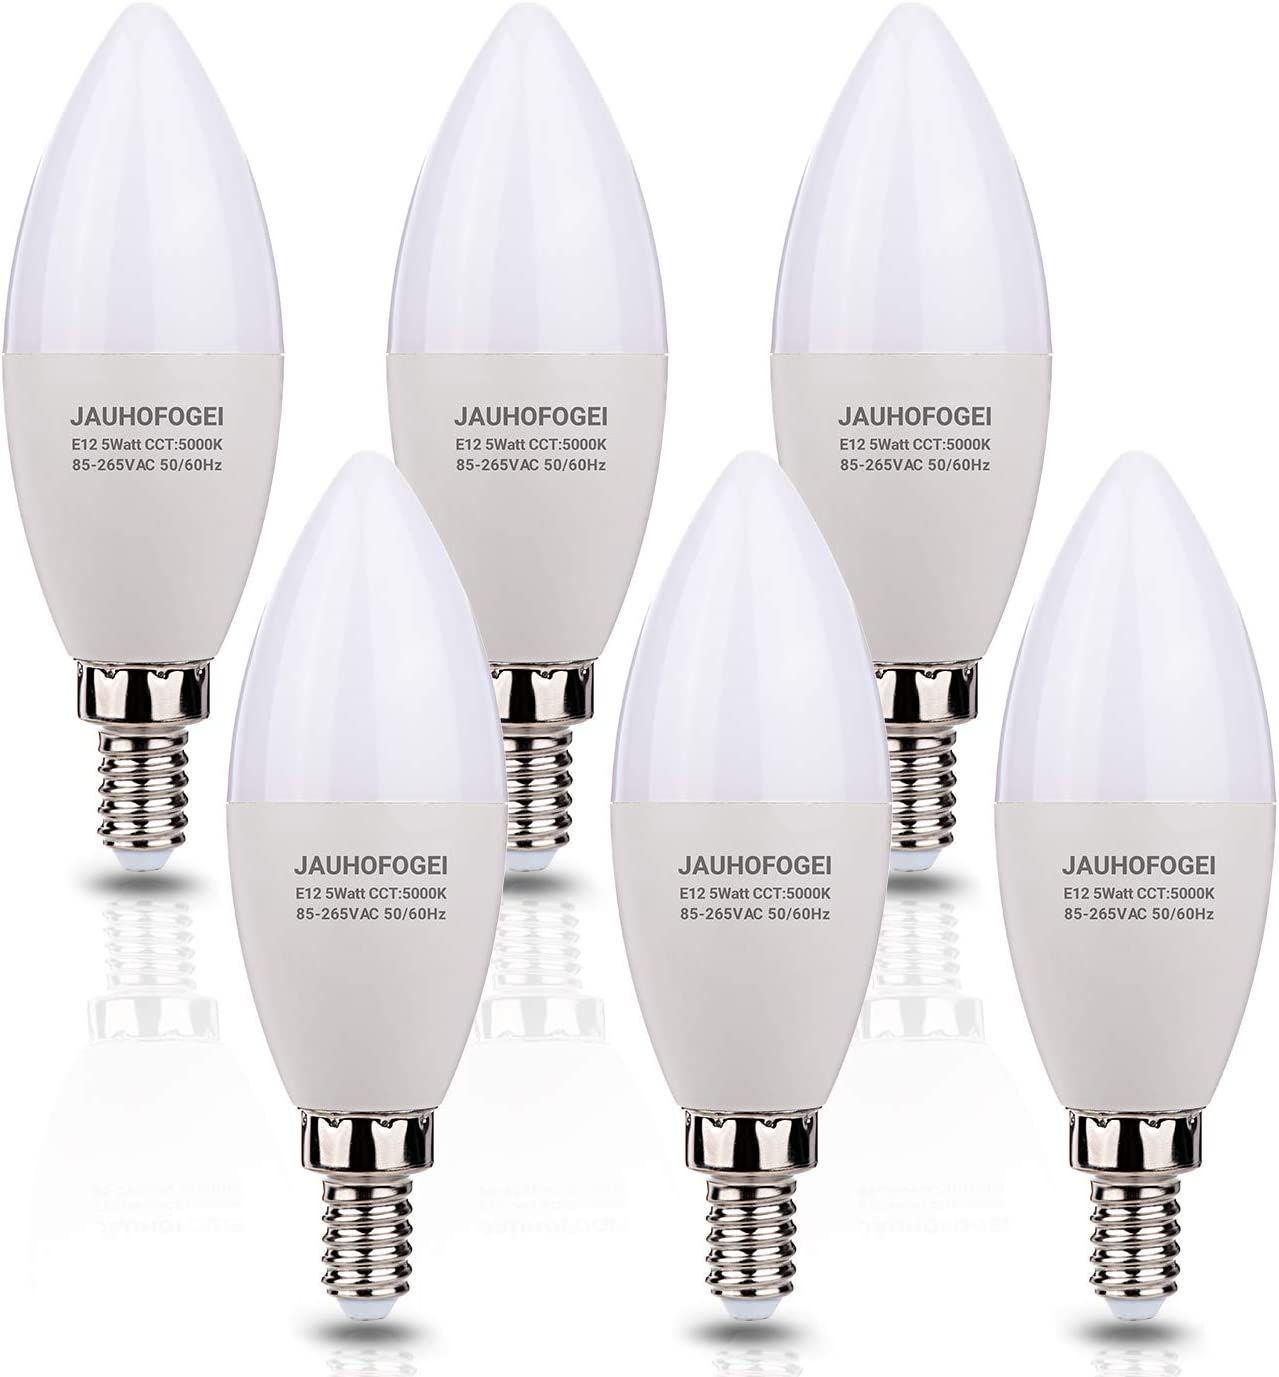 JAUHOFOGEI E12 LED Candelabra Light Bulbs, 40W Incandescent Equivalent Ceiling Fan Bulb Chandelier Bulbs, Daylight White 5000K and No Flickering, Non-dimmable Candle Replacement, 5W 460lm, Pack of 6